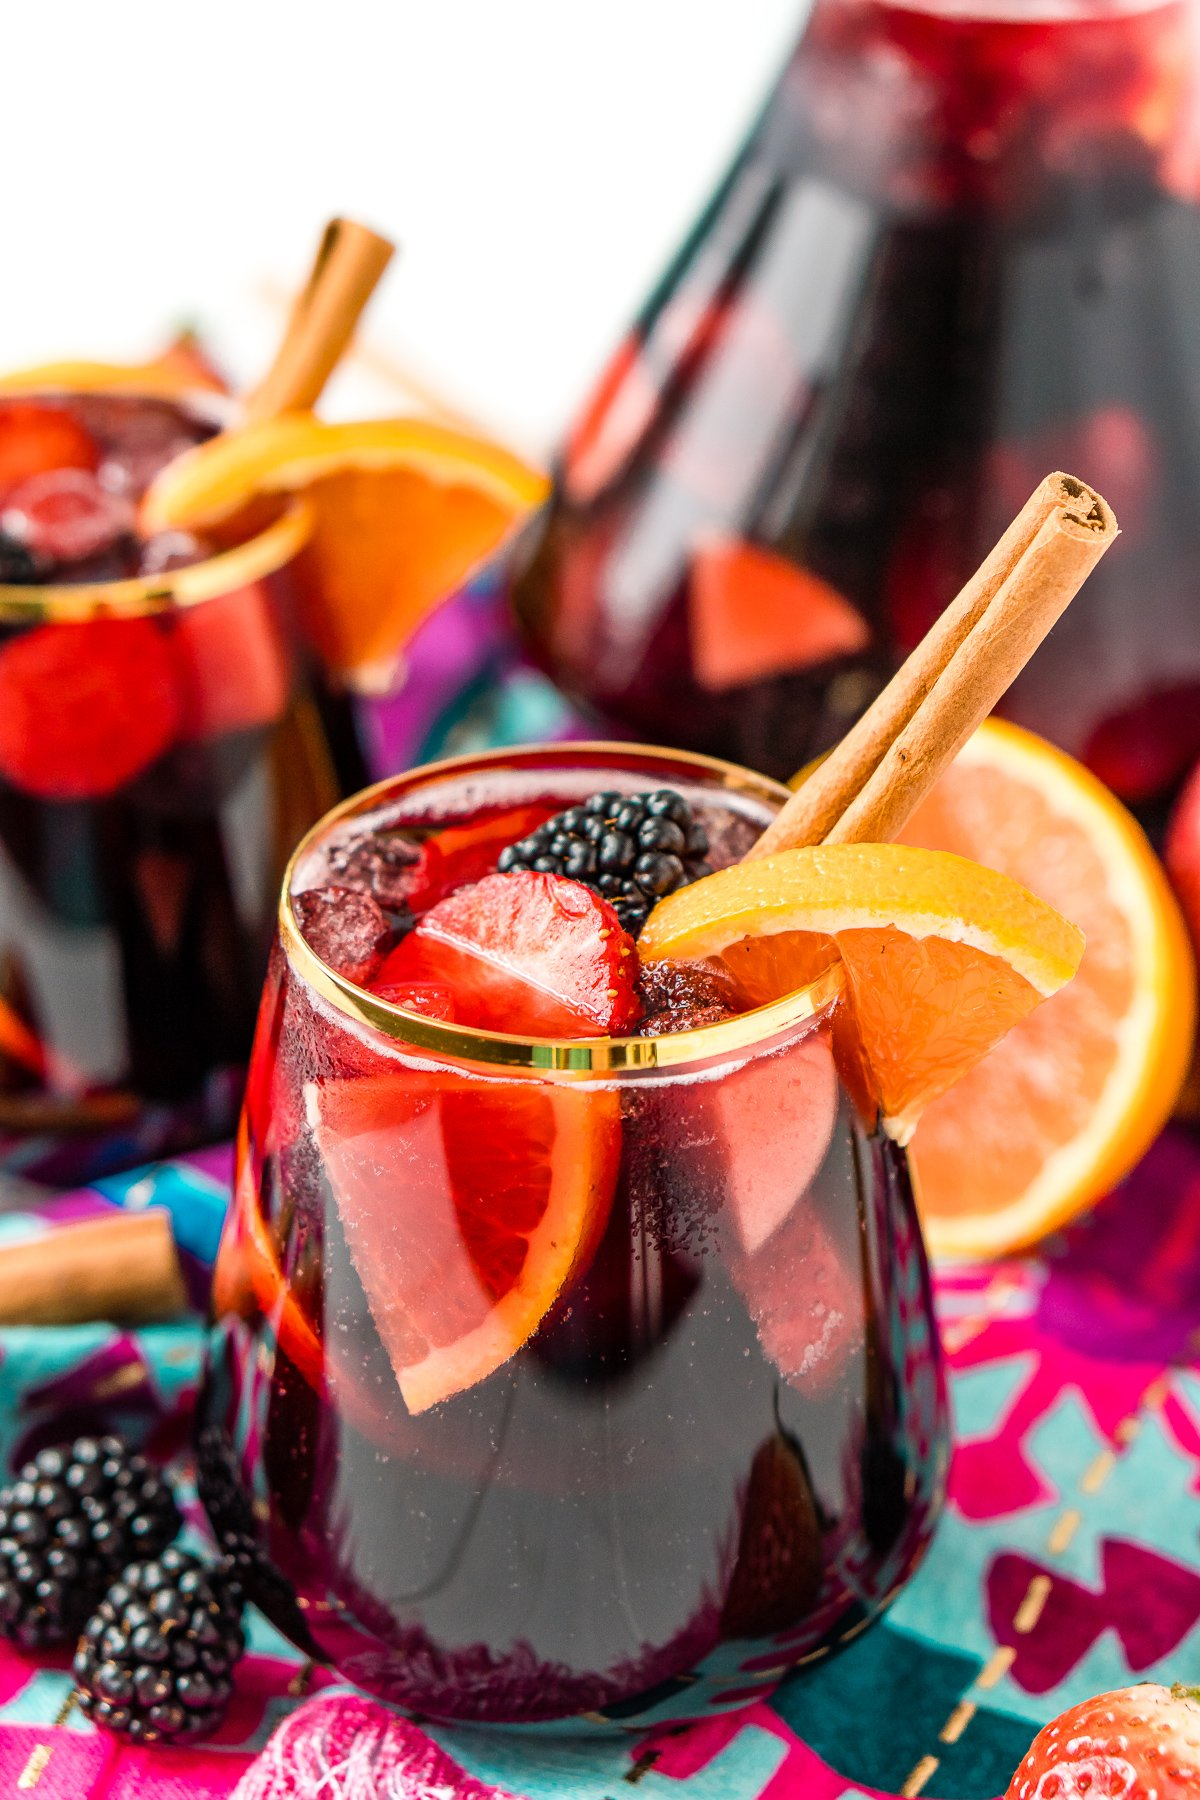 Close up photo of a glass of sangria made with red wine.